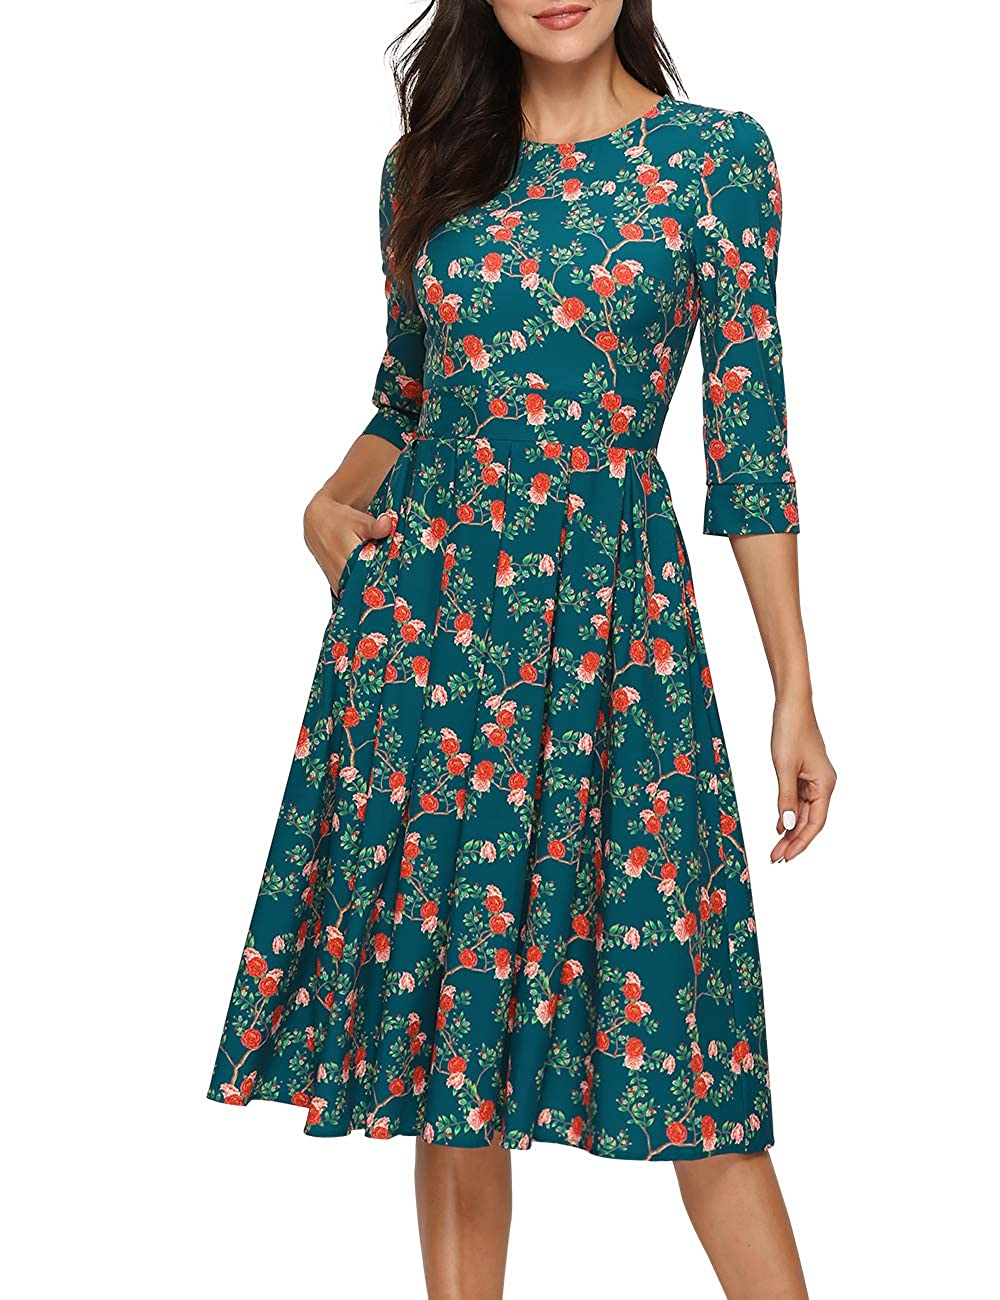 1940s Dress Styles Simple Flavor Womens Floral Vintage Dress Elegant Midi Evening Dress 3/4 Sleeves $26.99 AT vintagedancer.com